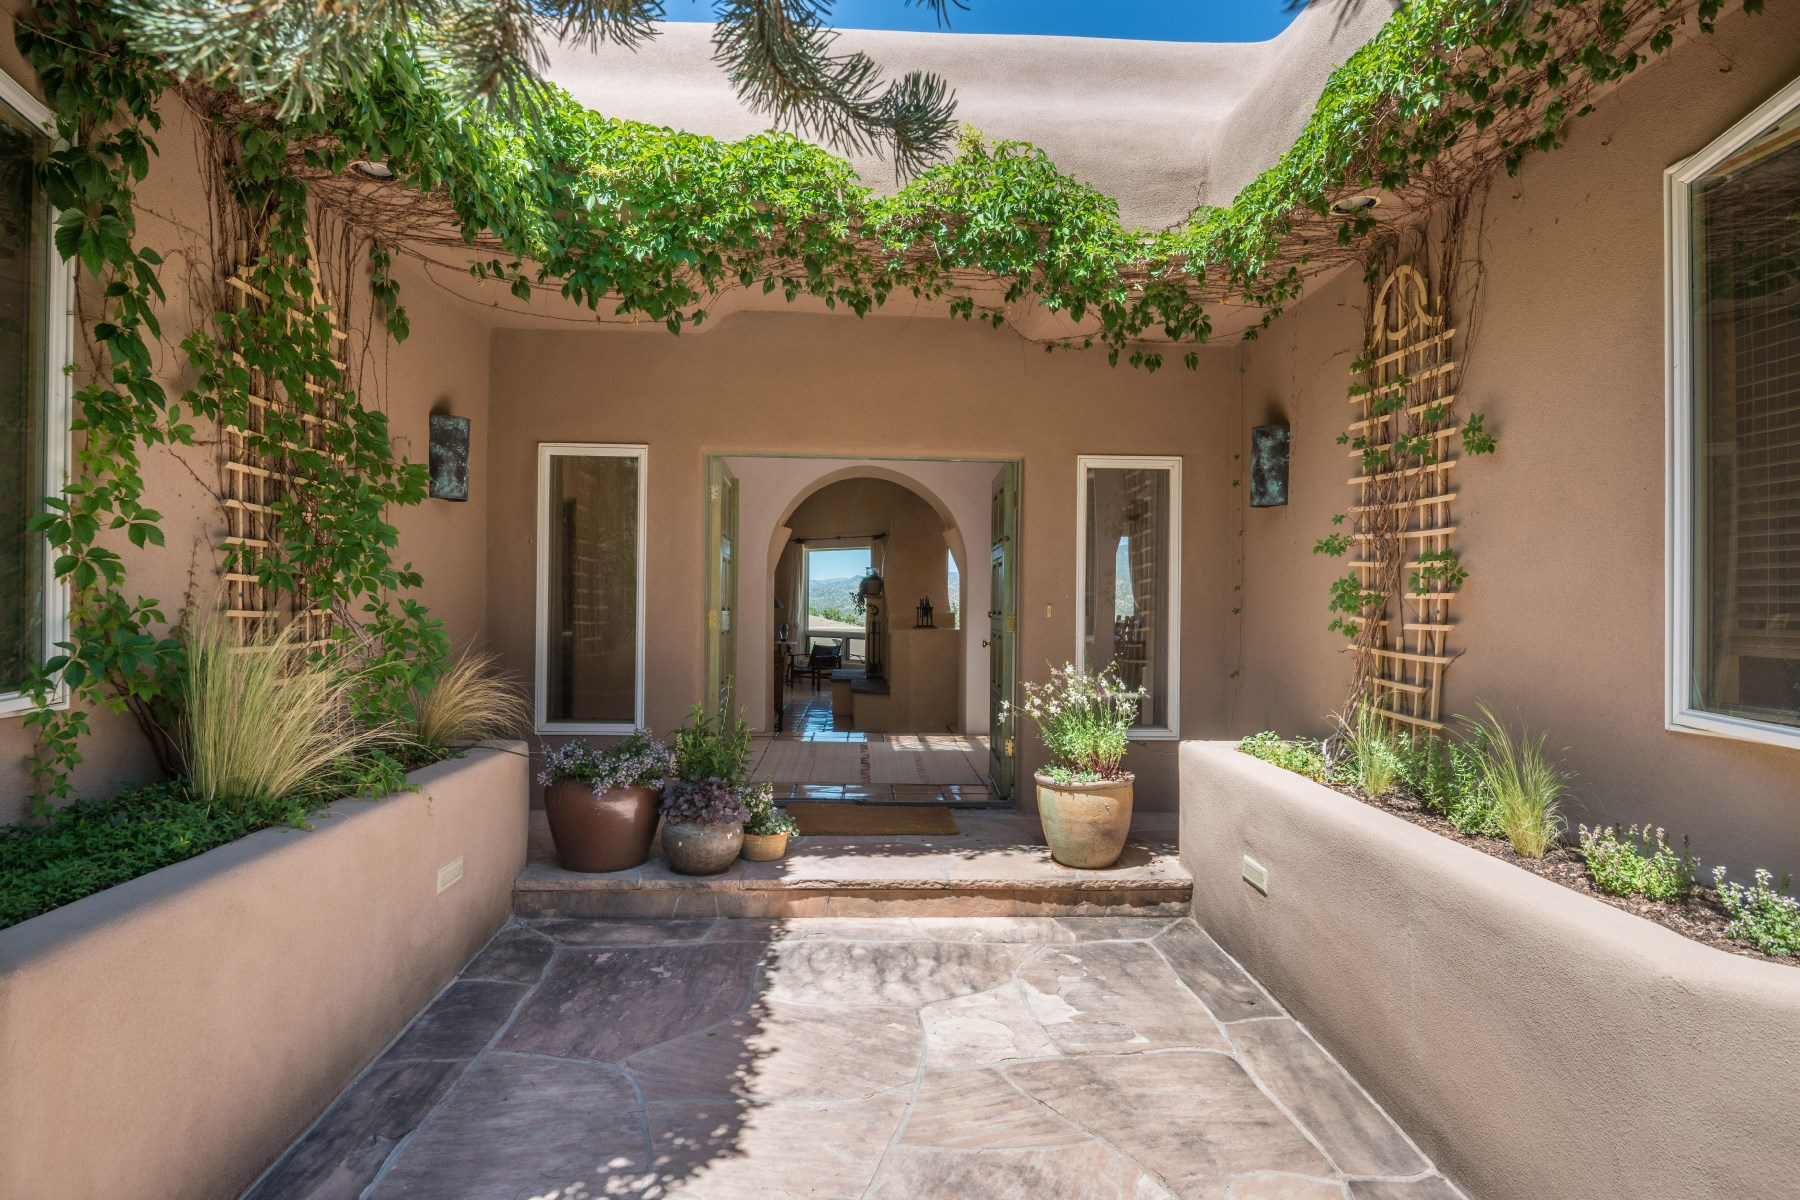 Single Family Home for Sale at 1226 Bishops Lodge Road 1226bishops Lodge Rd. Santa Fe, New Mexico, 87501 United States